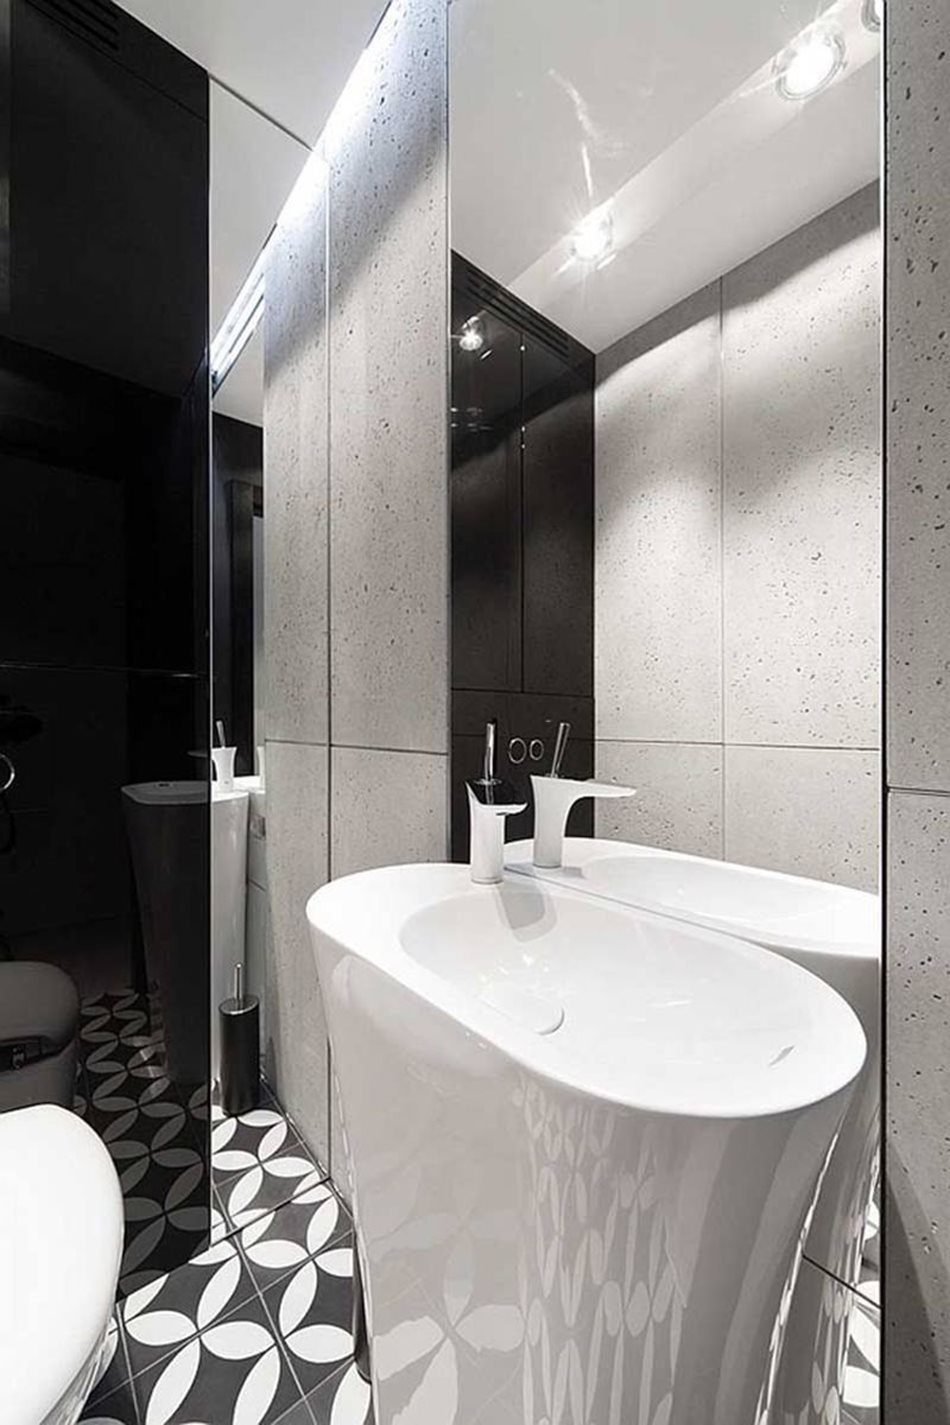 Apartment interior design in black and white colors Small bathroom design help